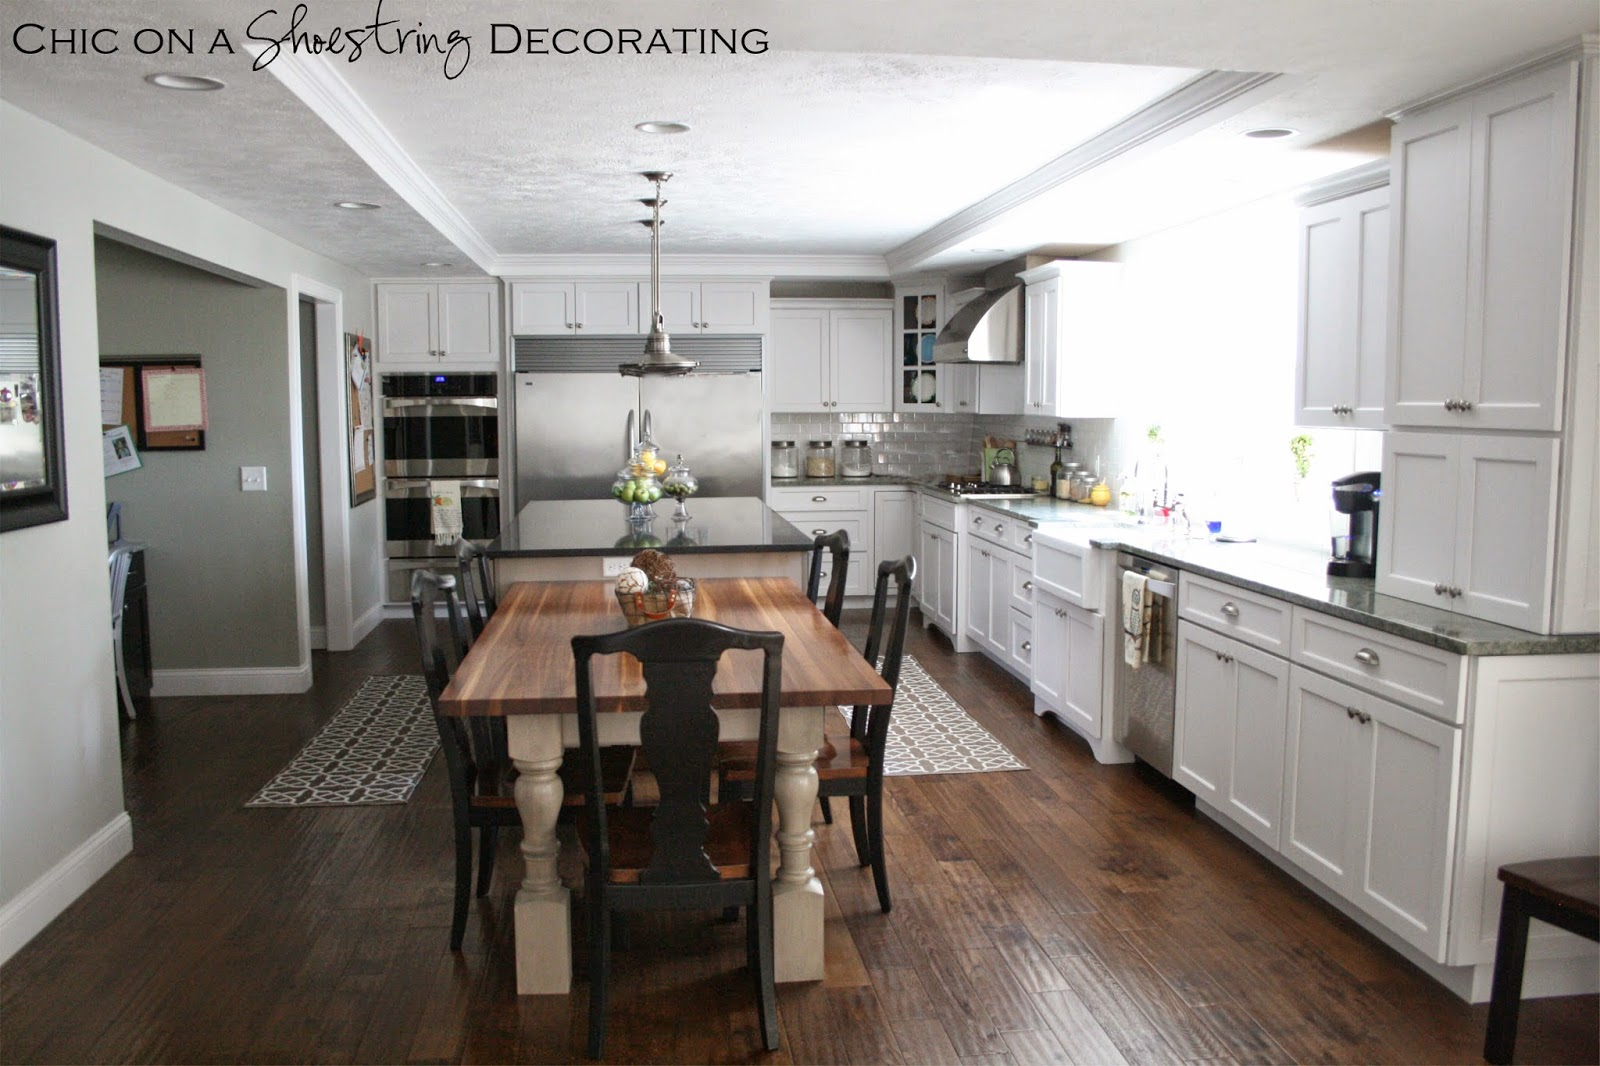 kitchen makeover by Chic on a Shoestring Decorating blog